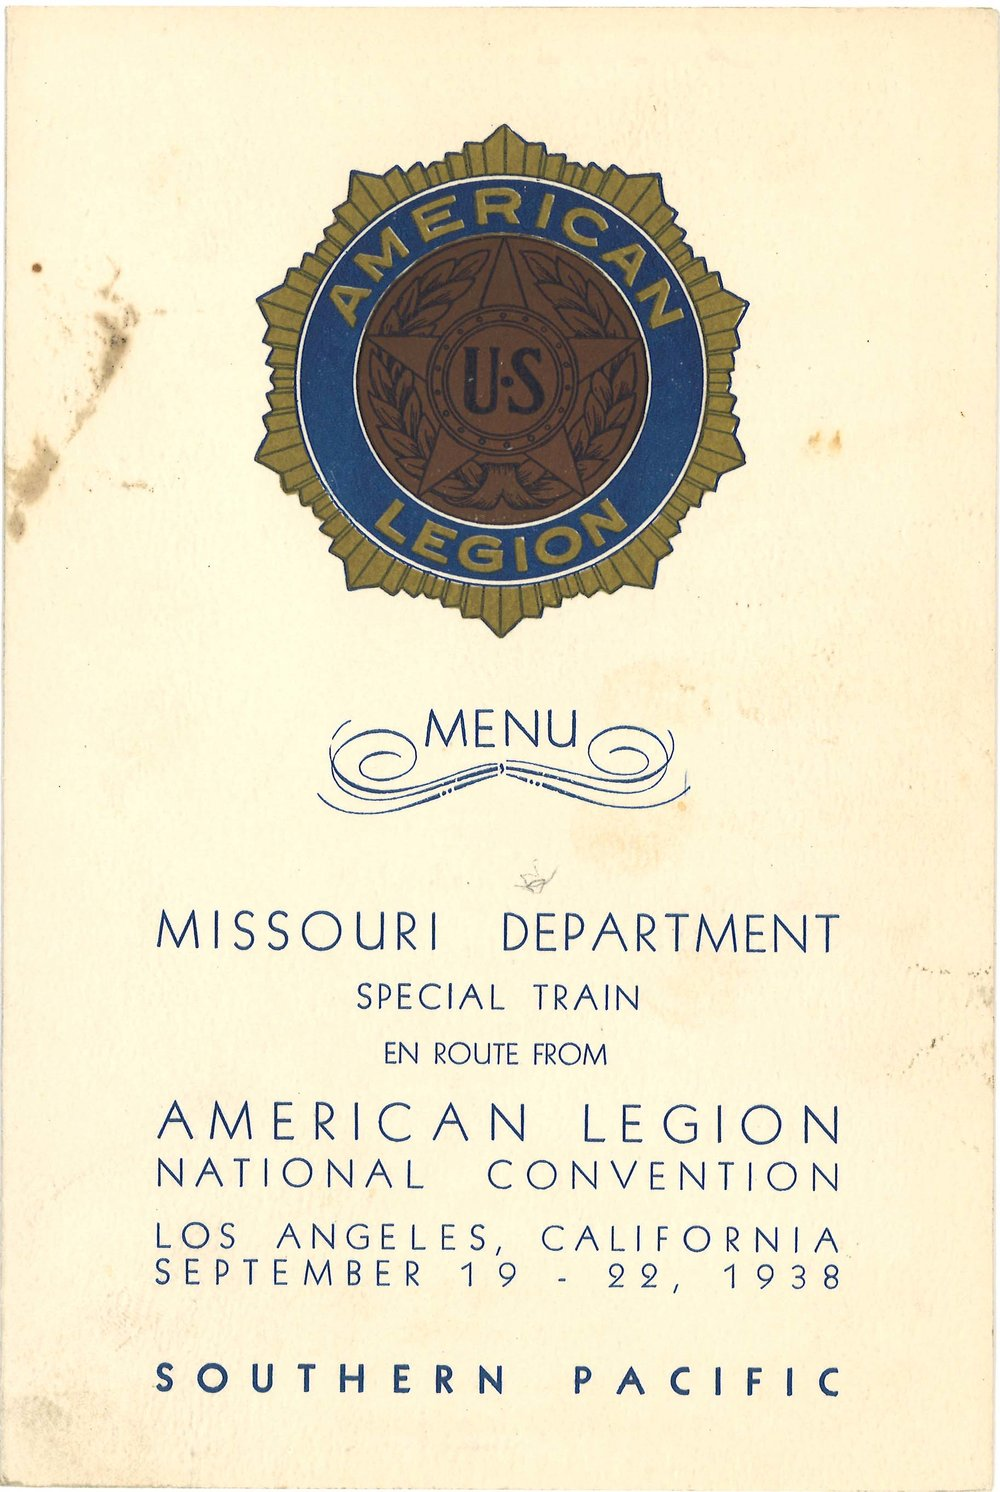 SP Missouri Department CV_small.jpg